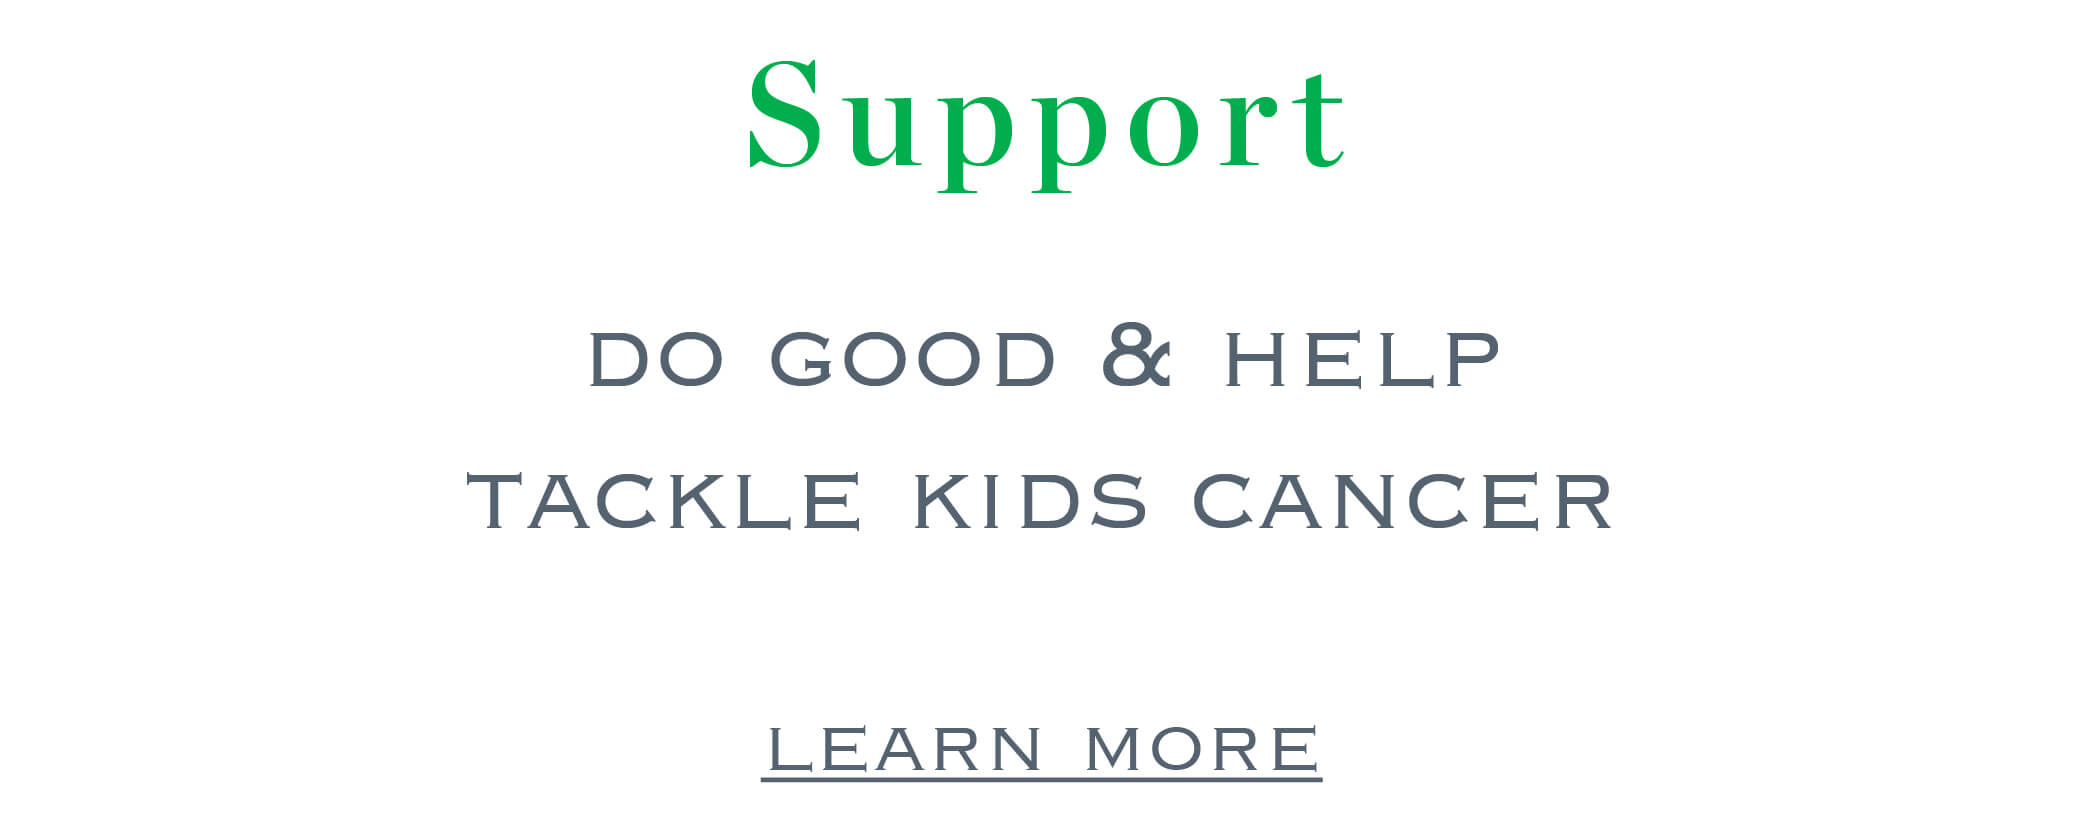 Support Tackle Kids Cancer